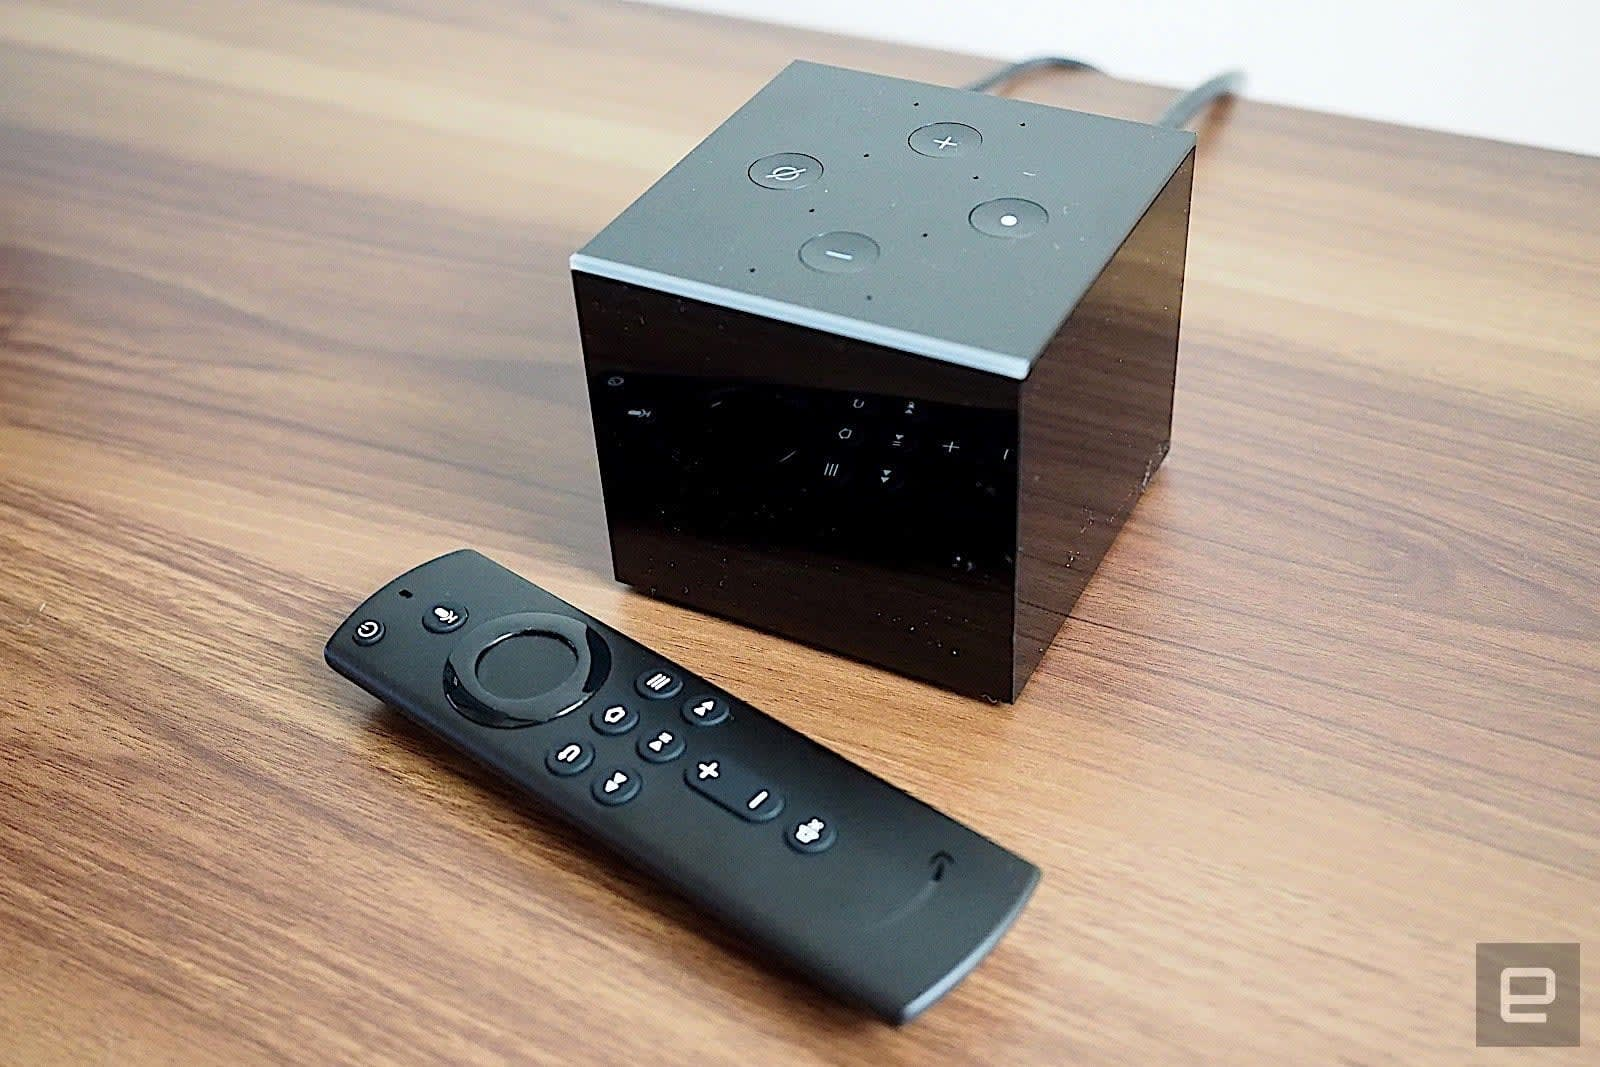 Apple TV+ is now available on more Amazon Fire devices